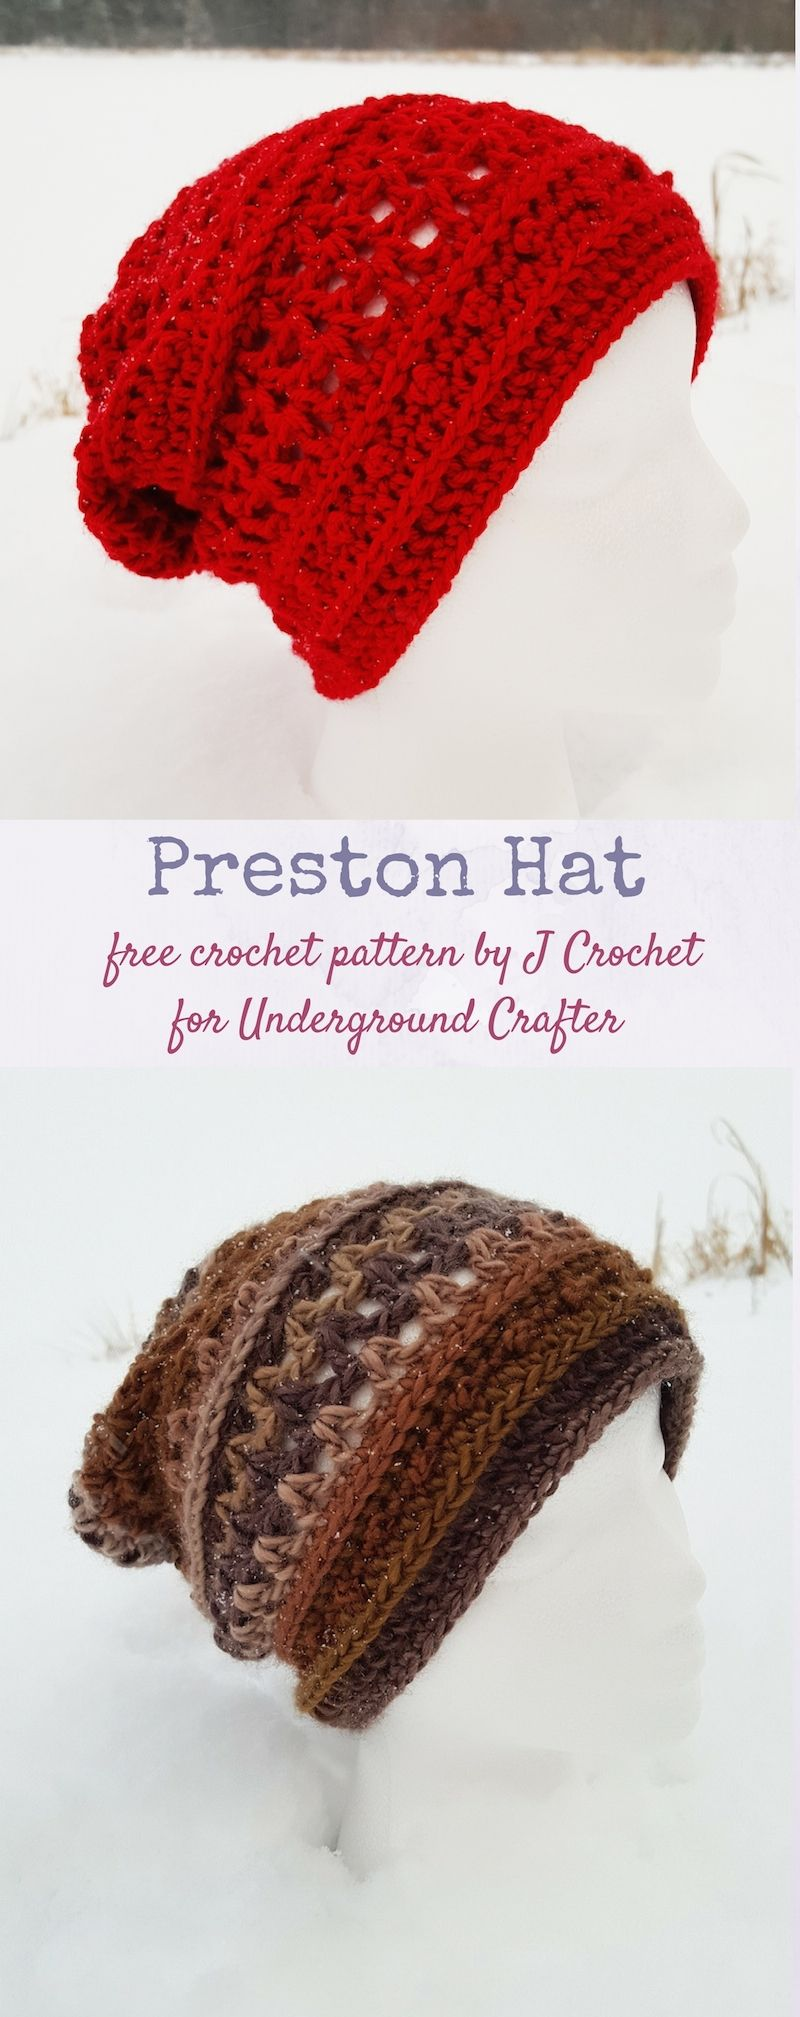 Crochet pattern: Preston Hat by J Crochet | Crochet accessories ...